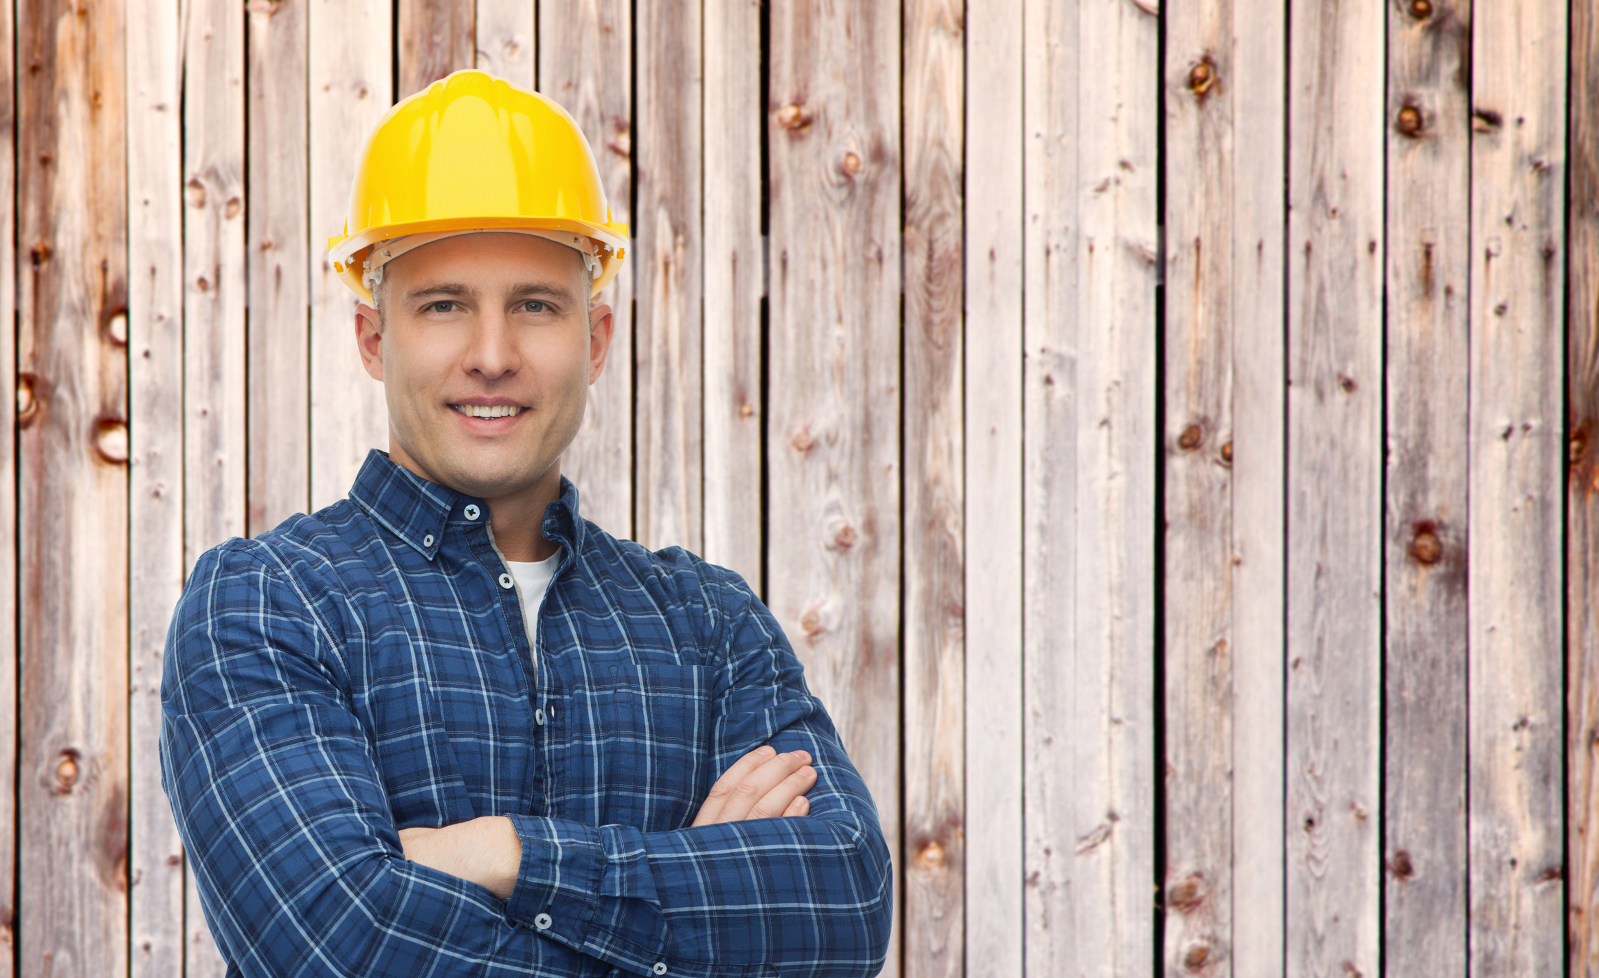 You are currently viewing Guide to Hiring a Contractor